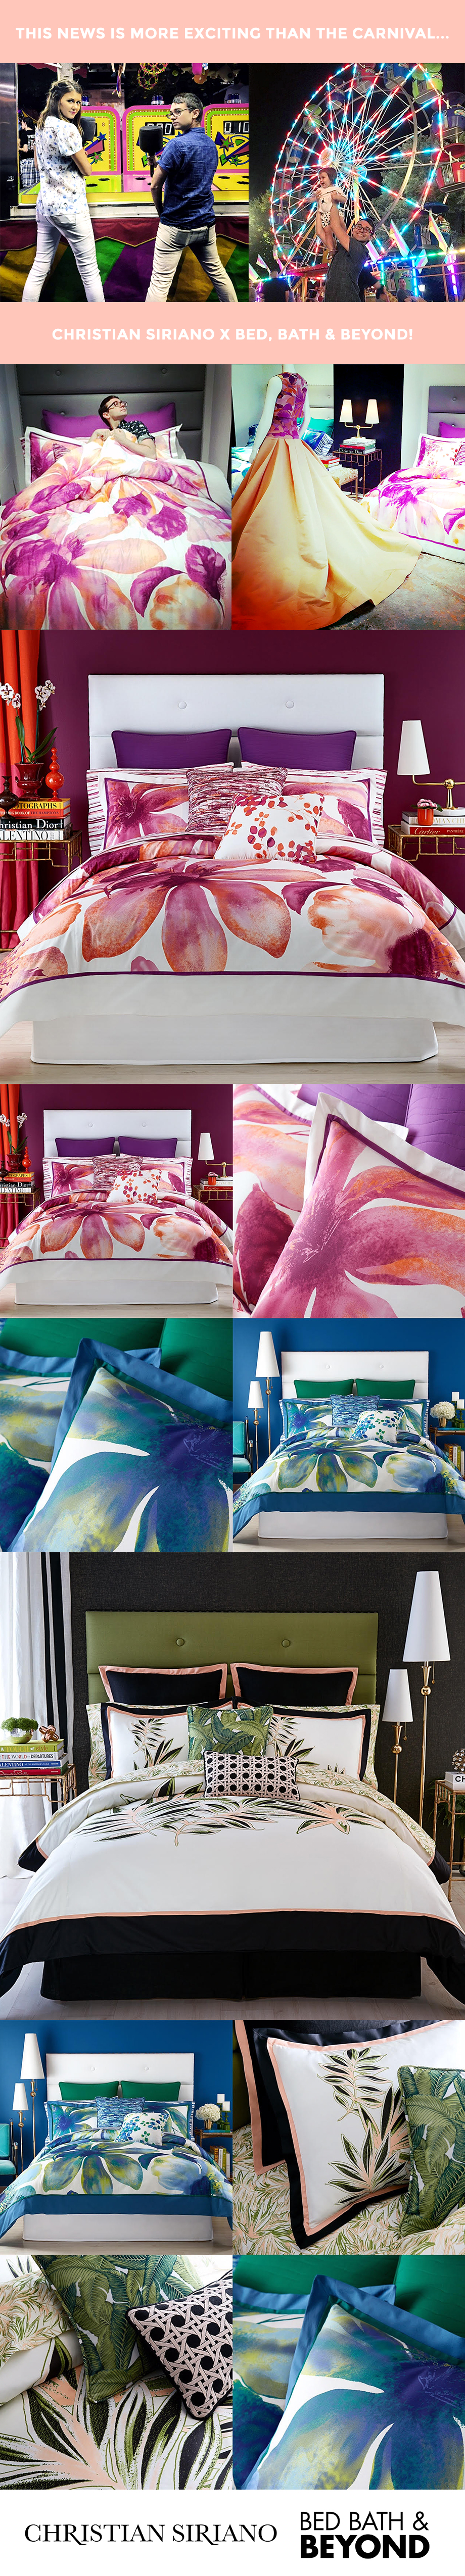 This is a post about Christian Siriano's new home collection at Bed, Bath & Beyond.